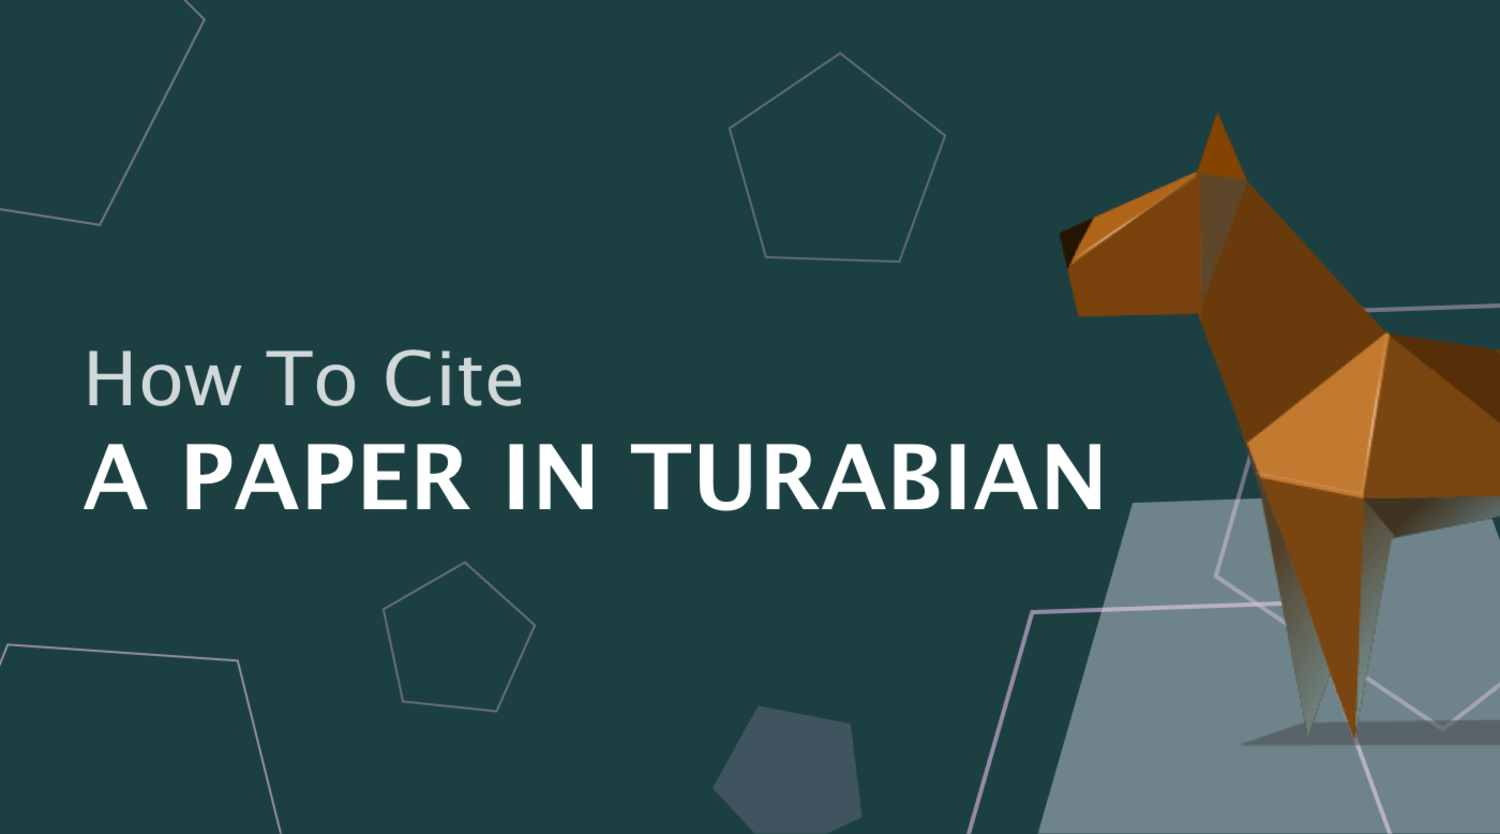 How to Cite a Paper in Chicago/Turabian Style